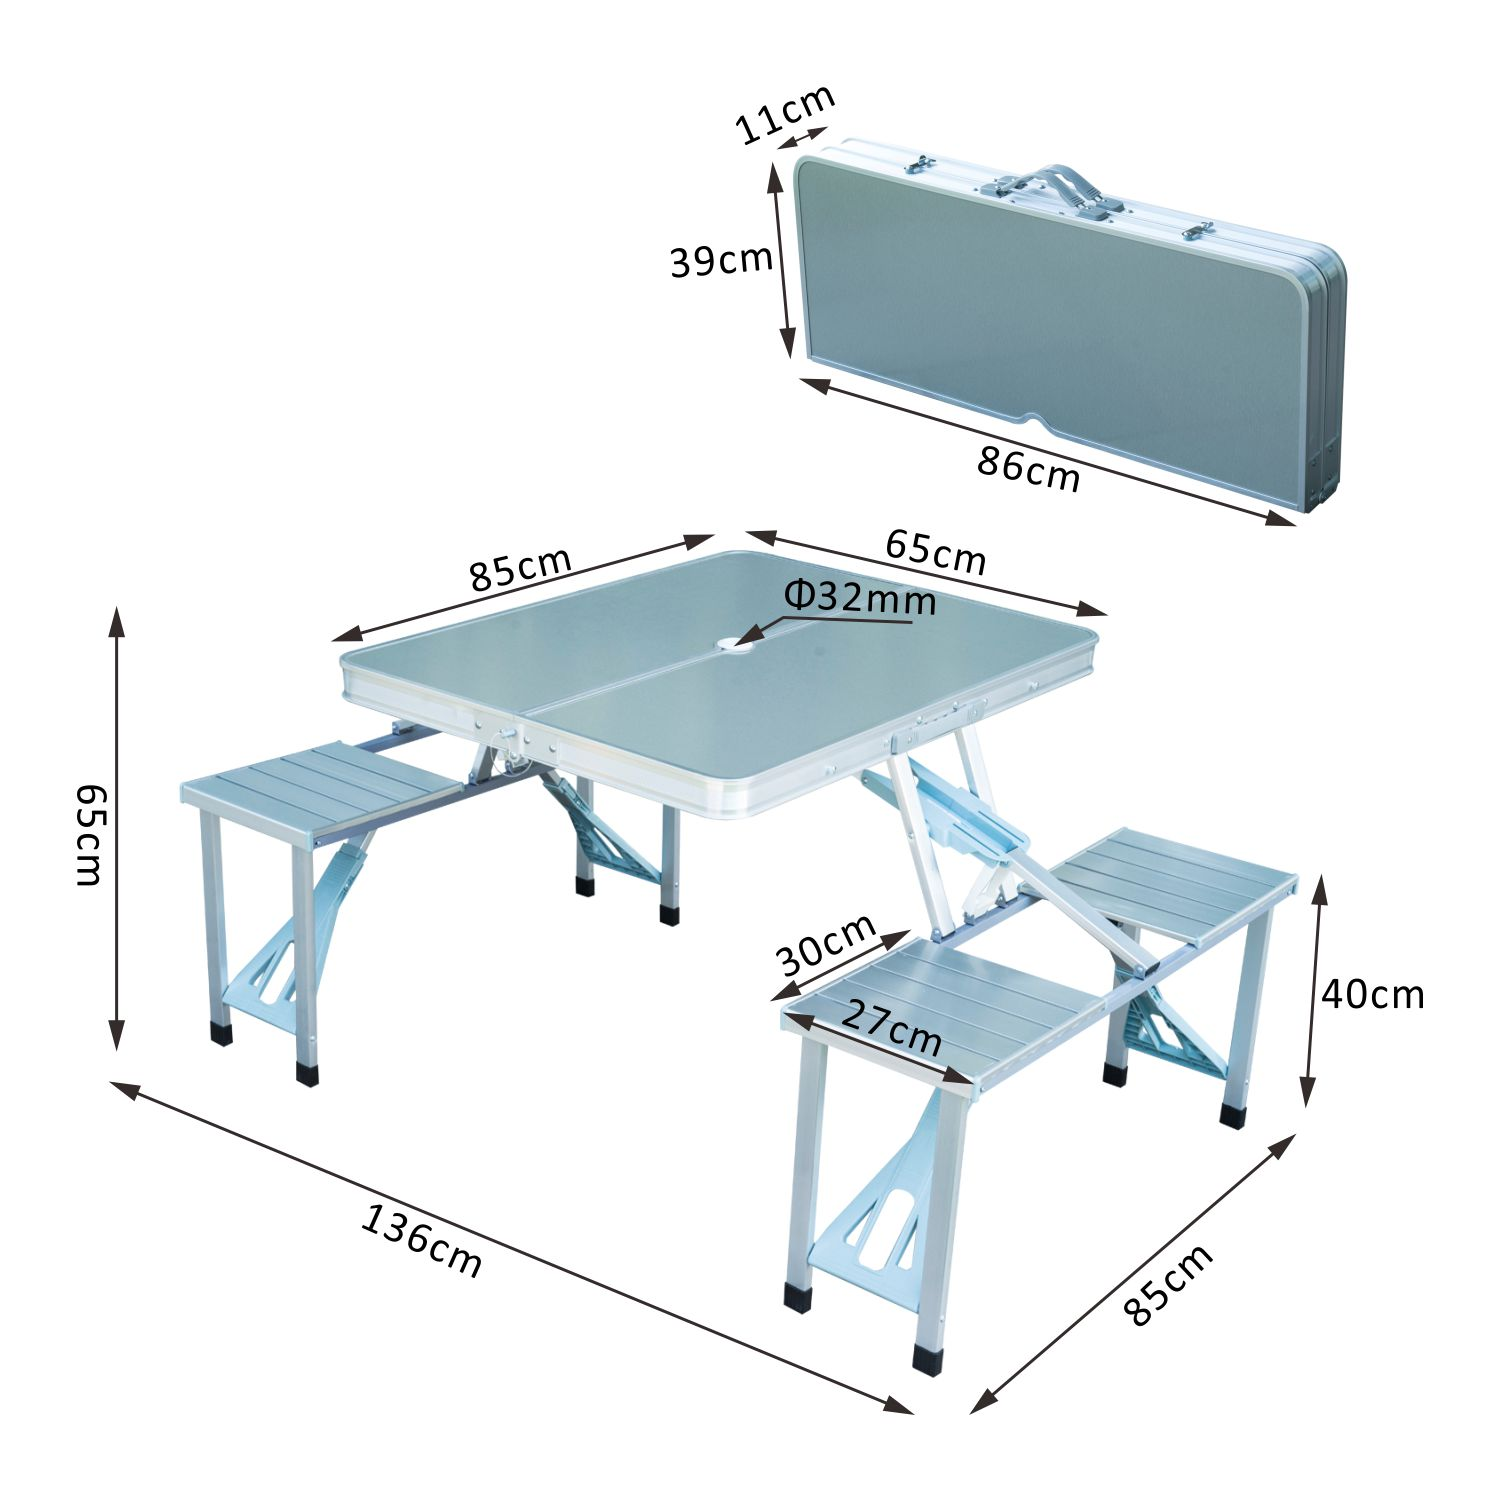 Portable-Folding-Camping-Picnic-Table-Party-Outdoor-Garden-Chair-Stools-Set thumbnail 40